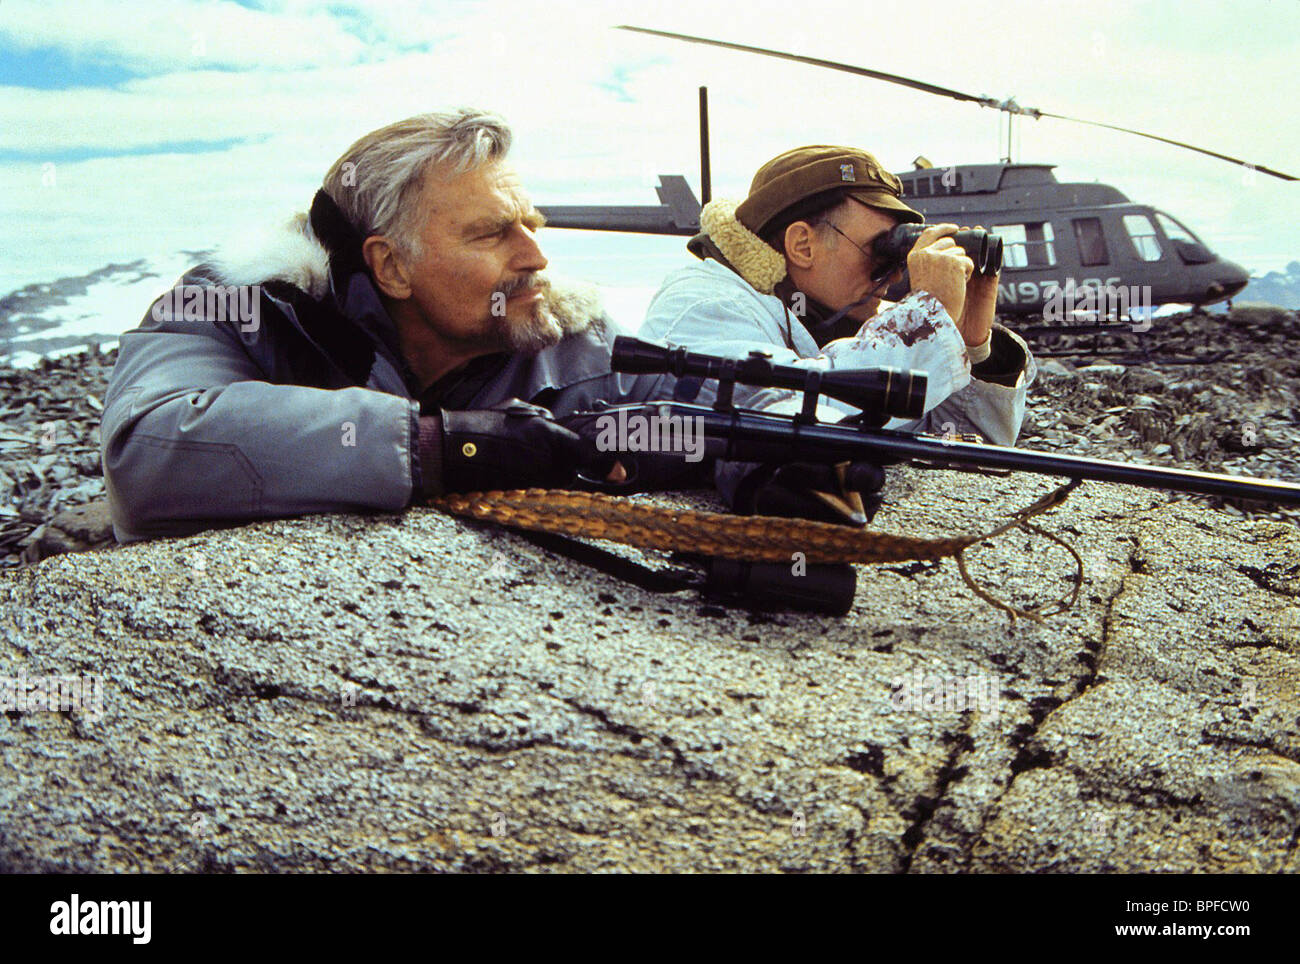 Charlton Heston Alaska 1996 Stock Photo 31072188 Alamy